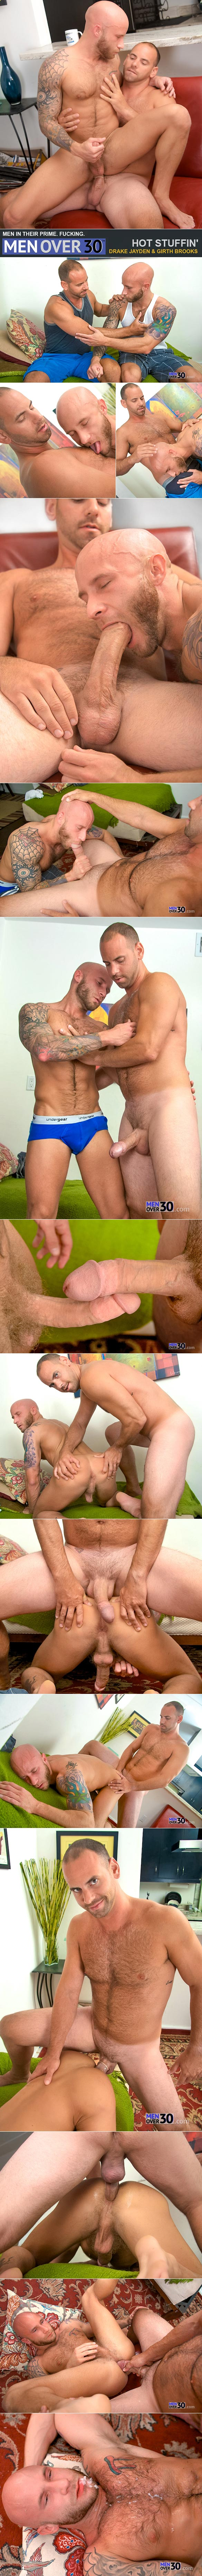 "MenOver30: Girth Brooks pounds Drake Jayden in ""Hot Stuffin'"""